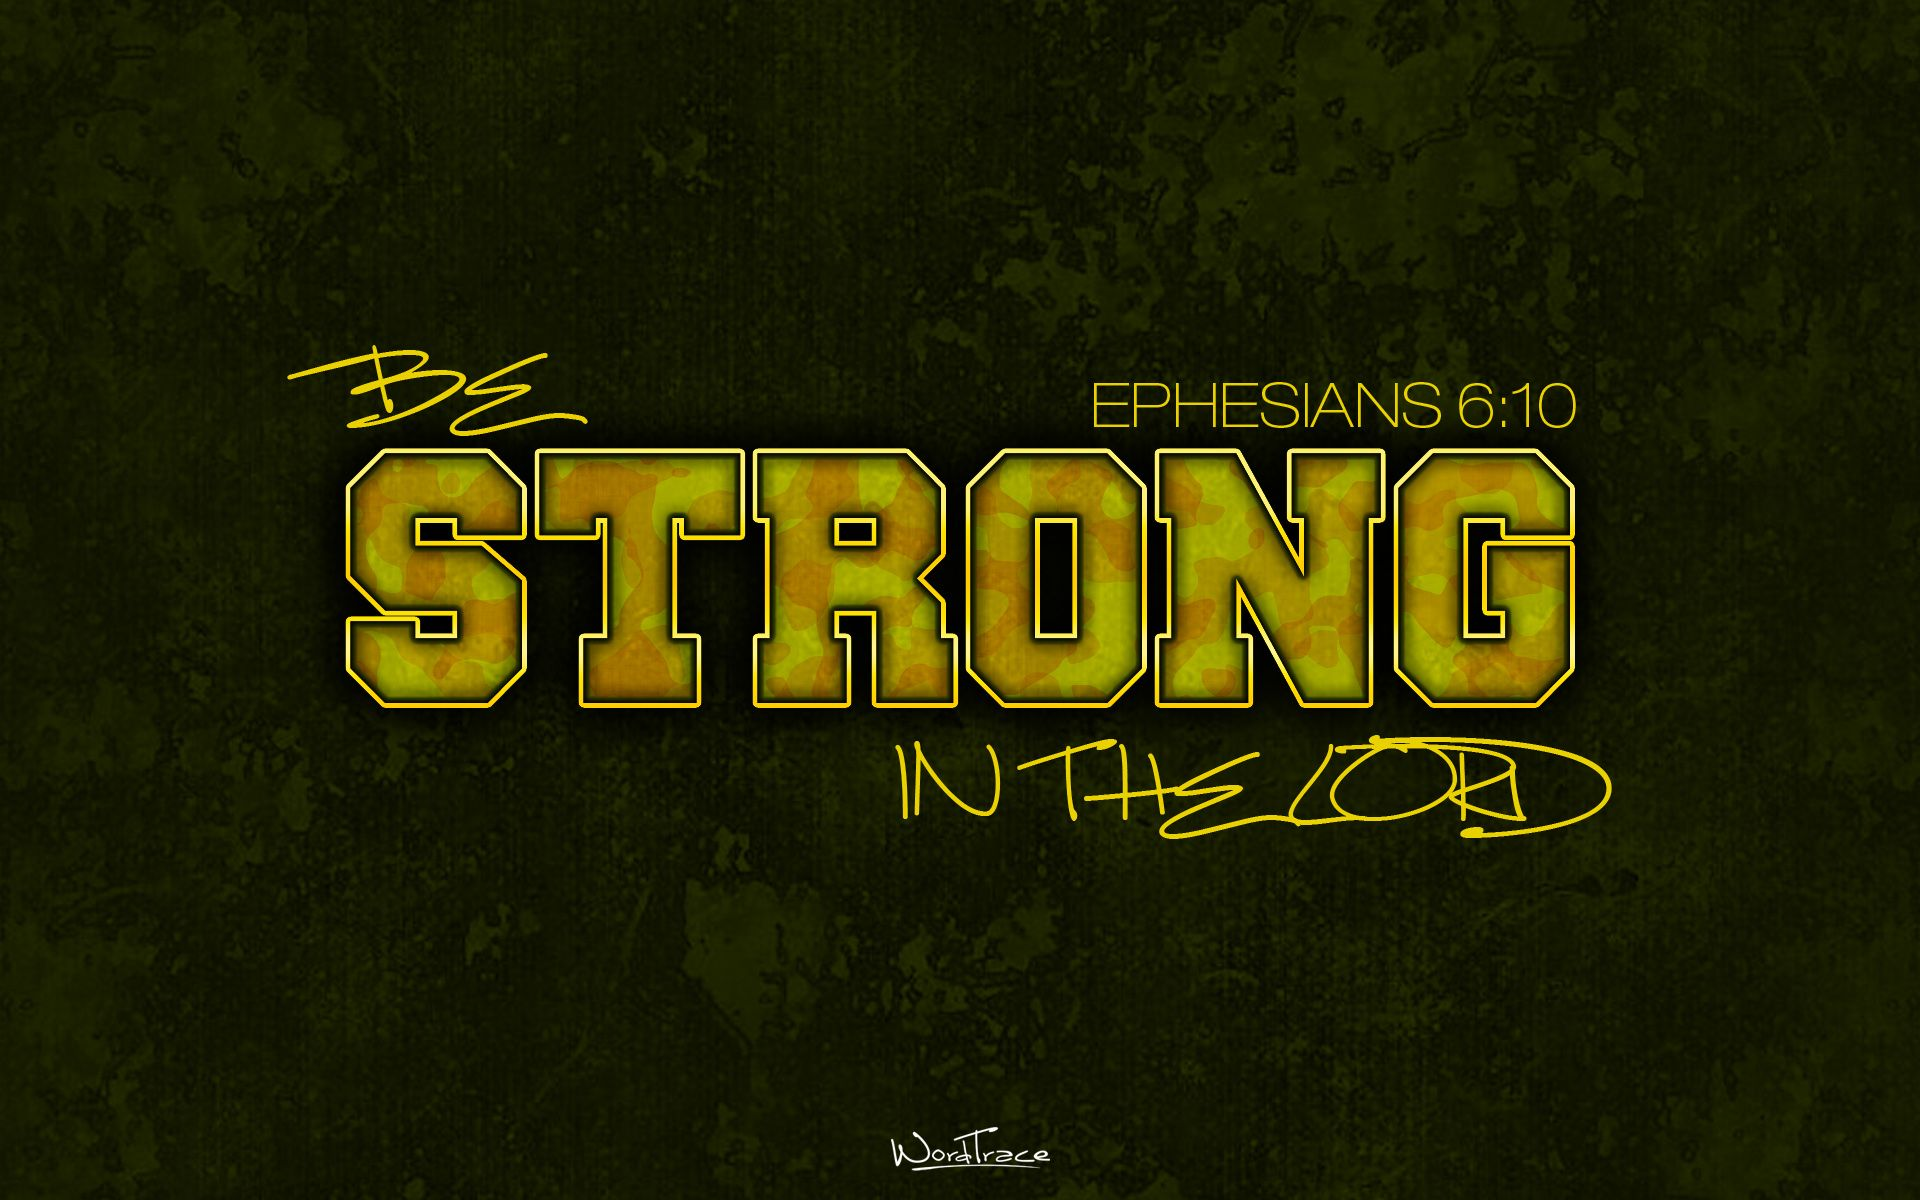 scripture wallpaper Download 'Be Strong!' wallpaper for